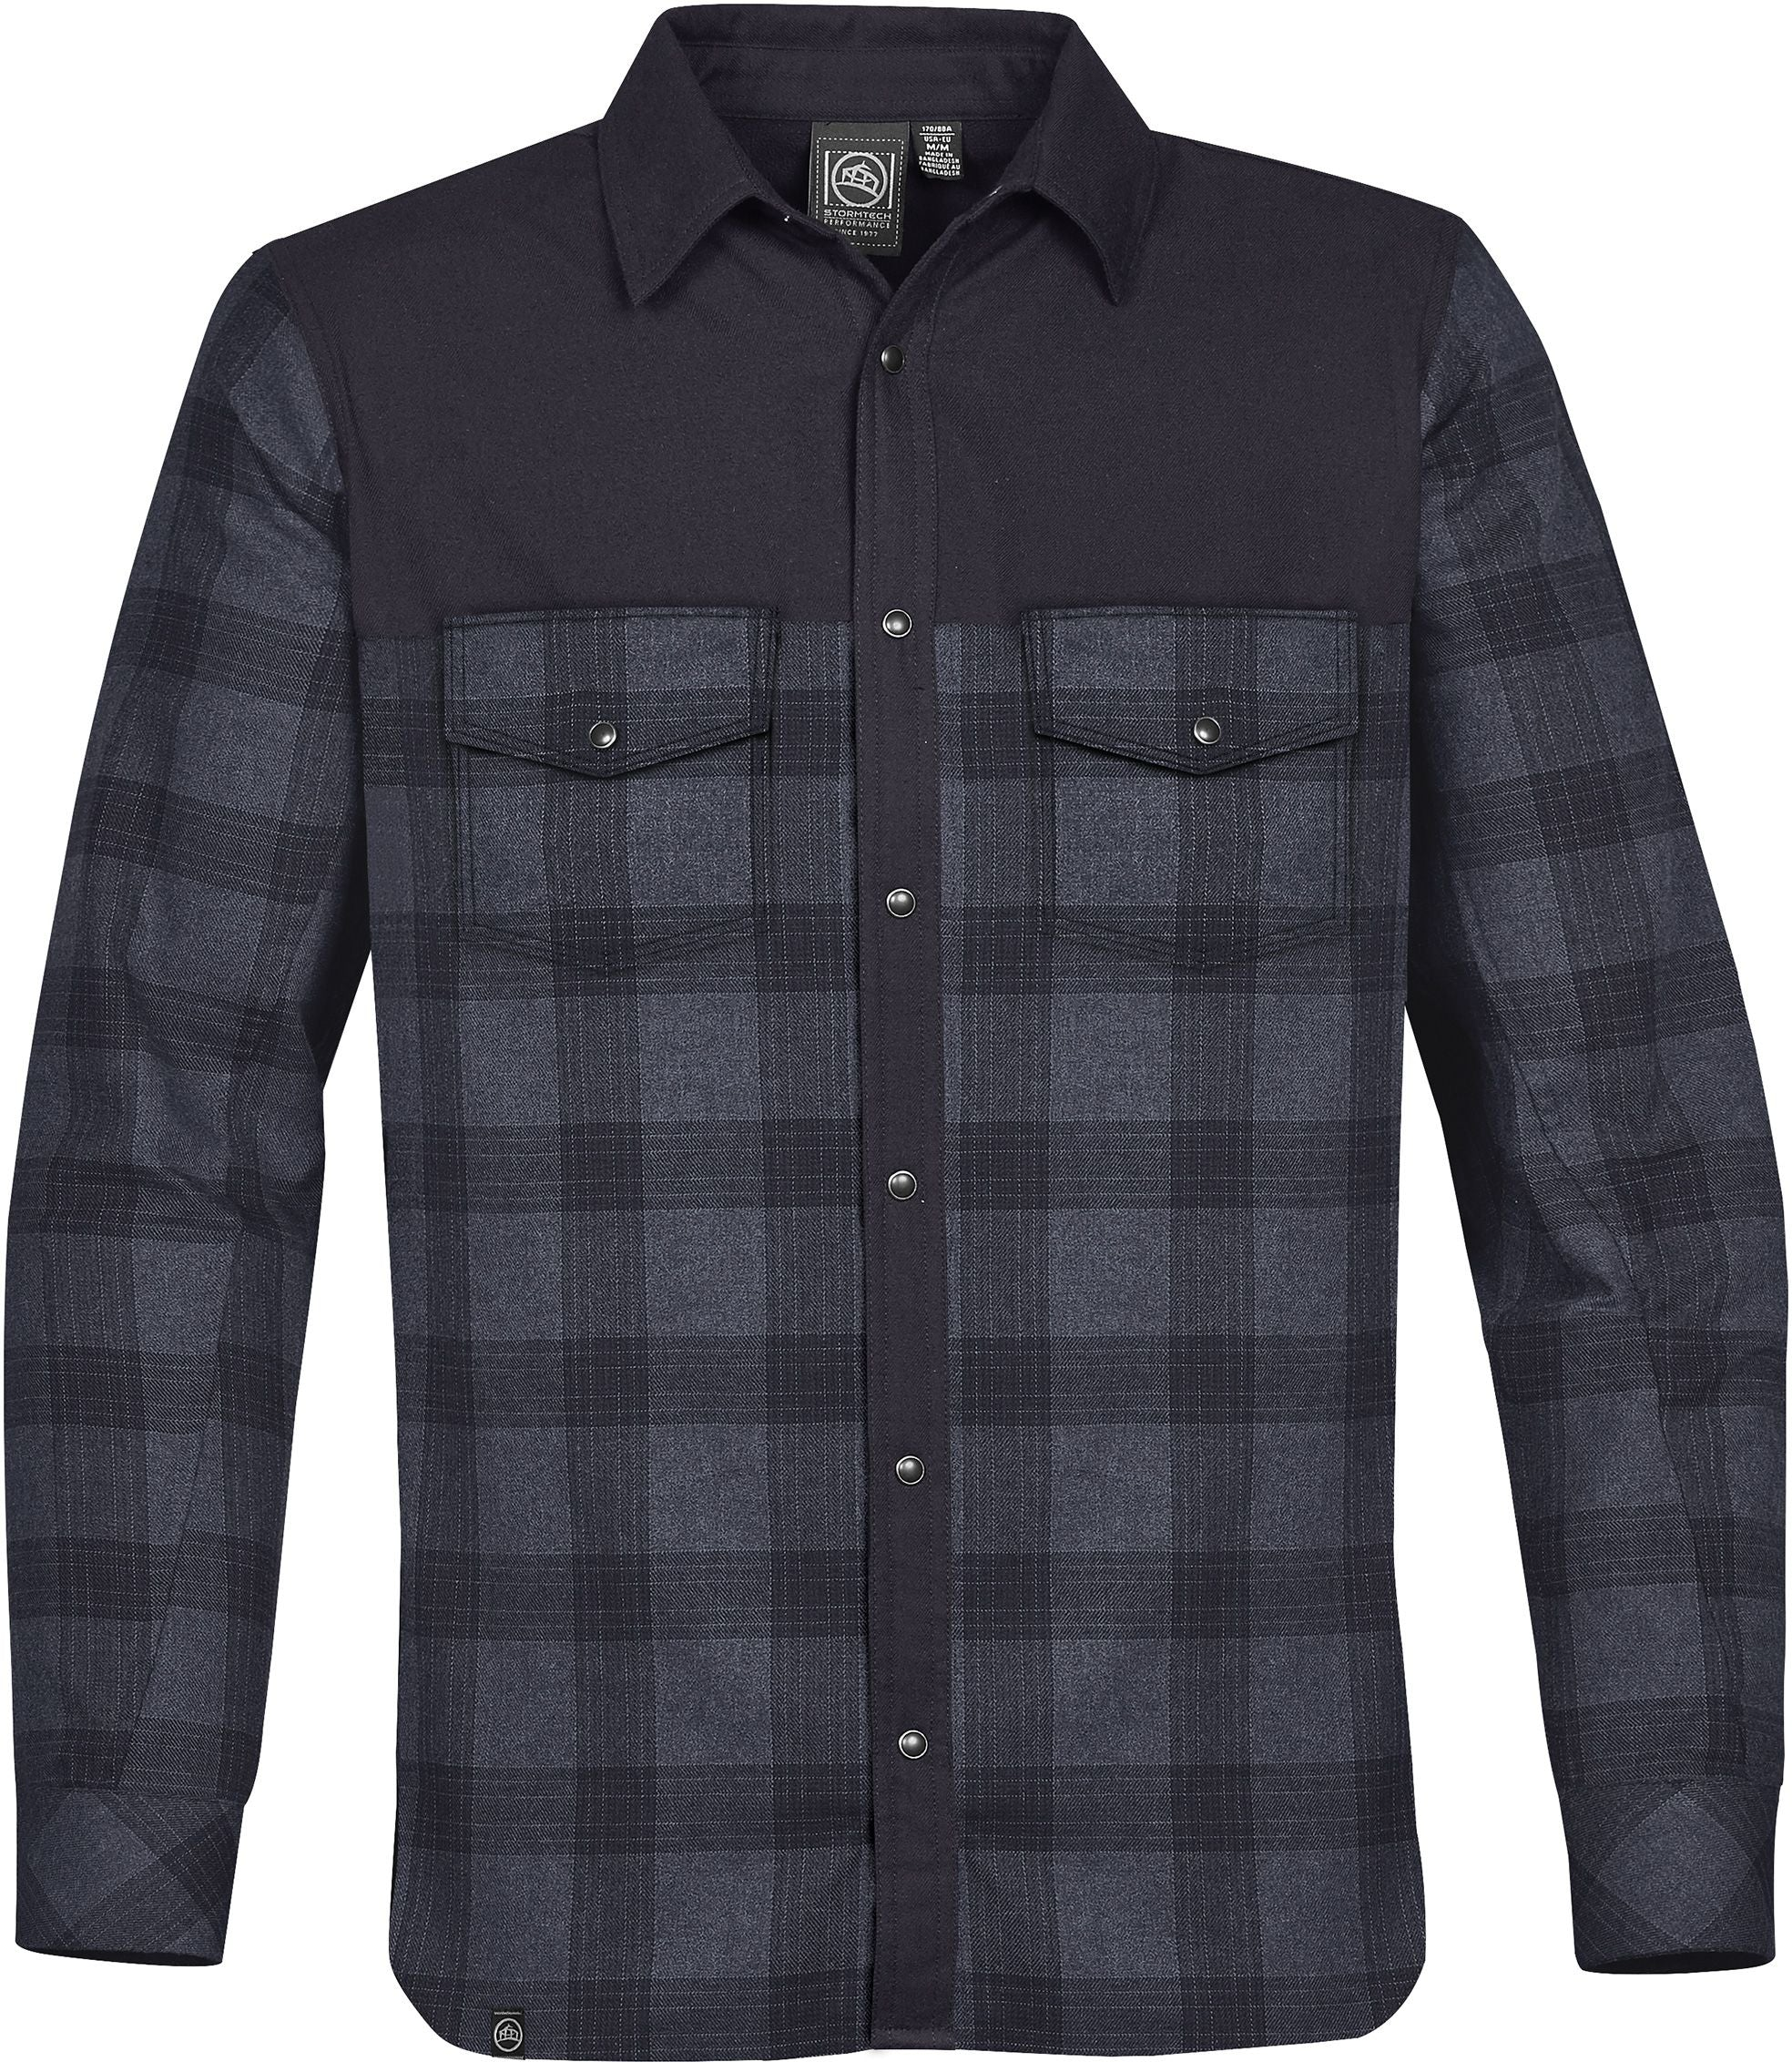 STORMTECH MEN'S LOGAN THERMAL L/S PLAID SHIRT